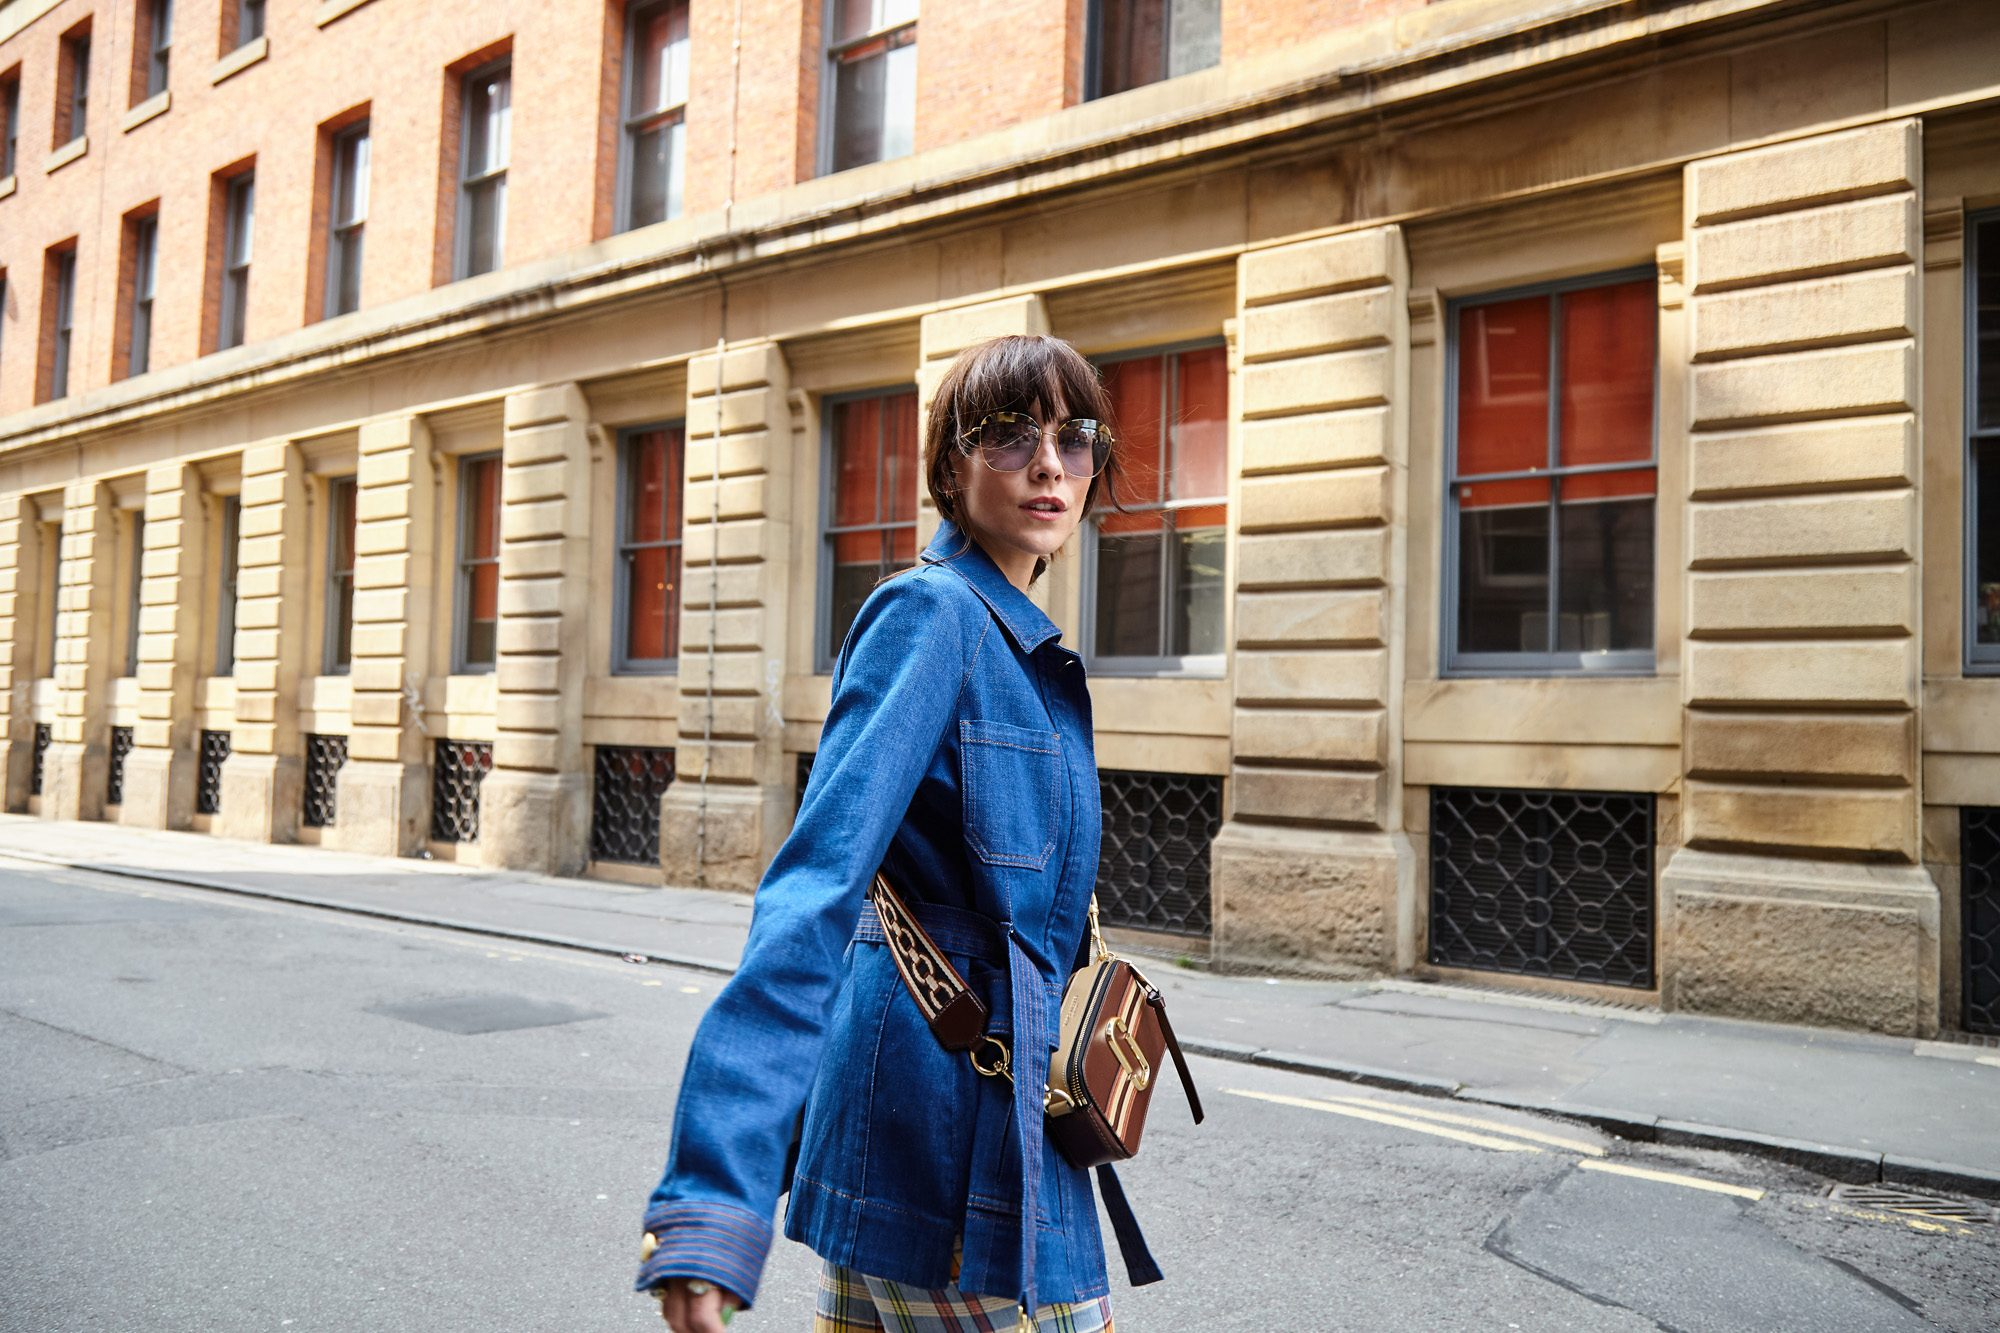 LAYER PLAYERS | HOW TO MAKE THE MOST OF YOUR SUMMER PIECES